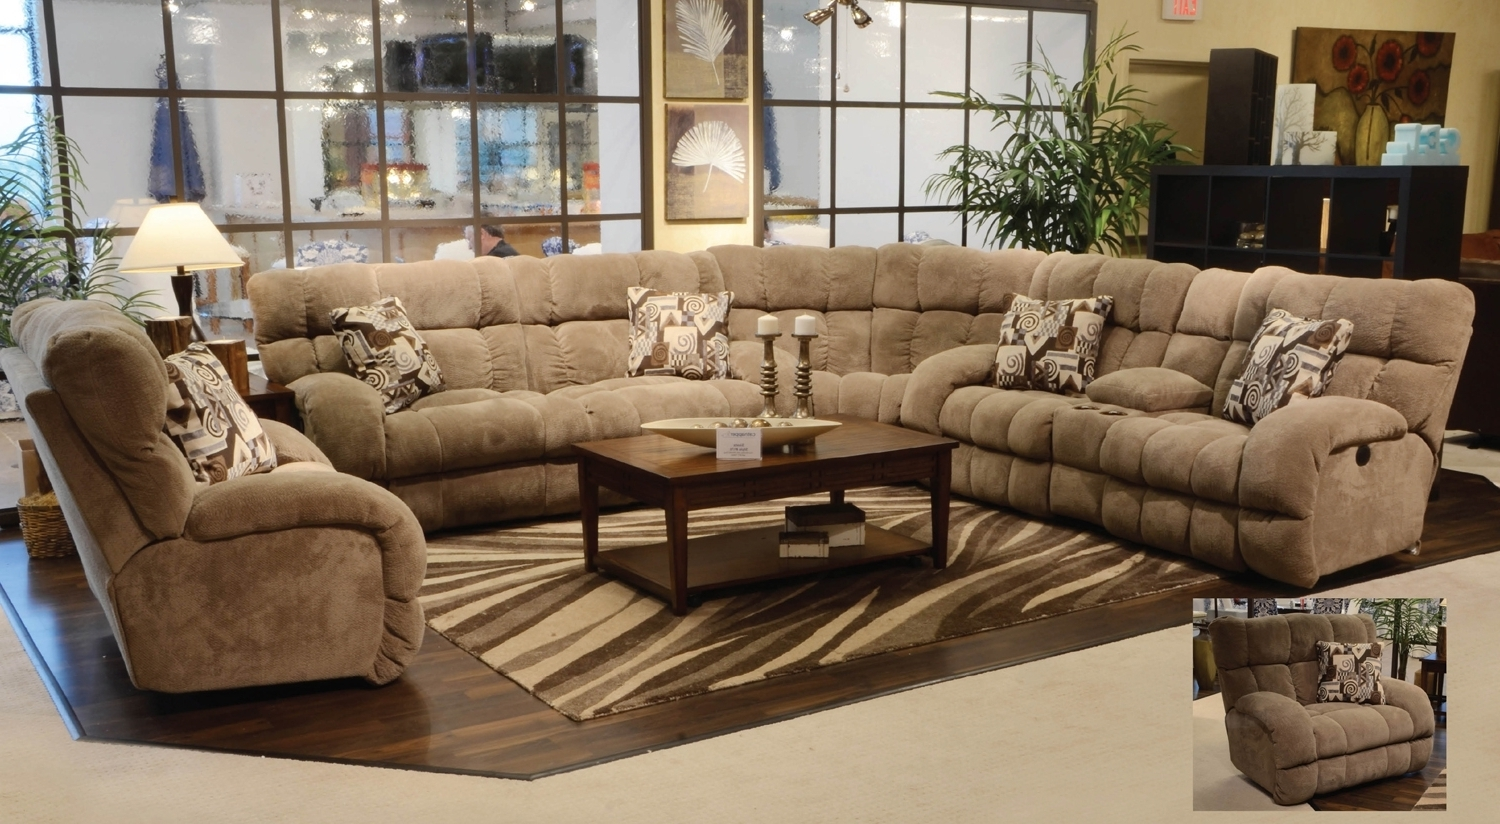 Large Sectional Sofa Home — Capricornradio Homescapricornradio Homes Inside Preferred Extra Large Sectional Sofas (View 6 of 20)